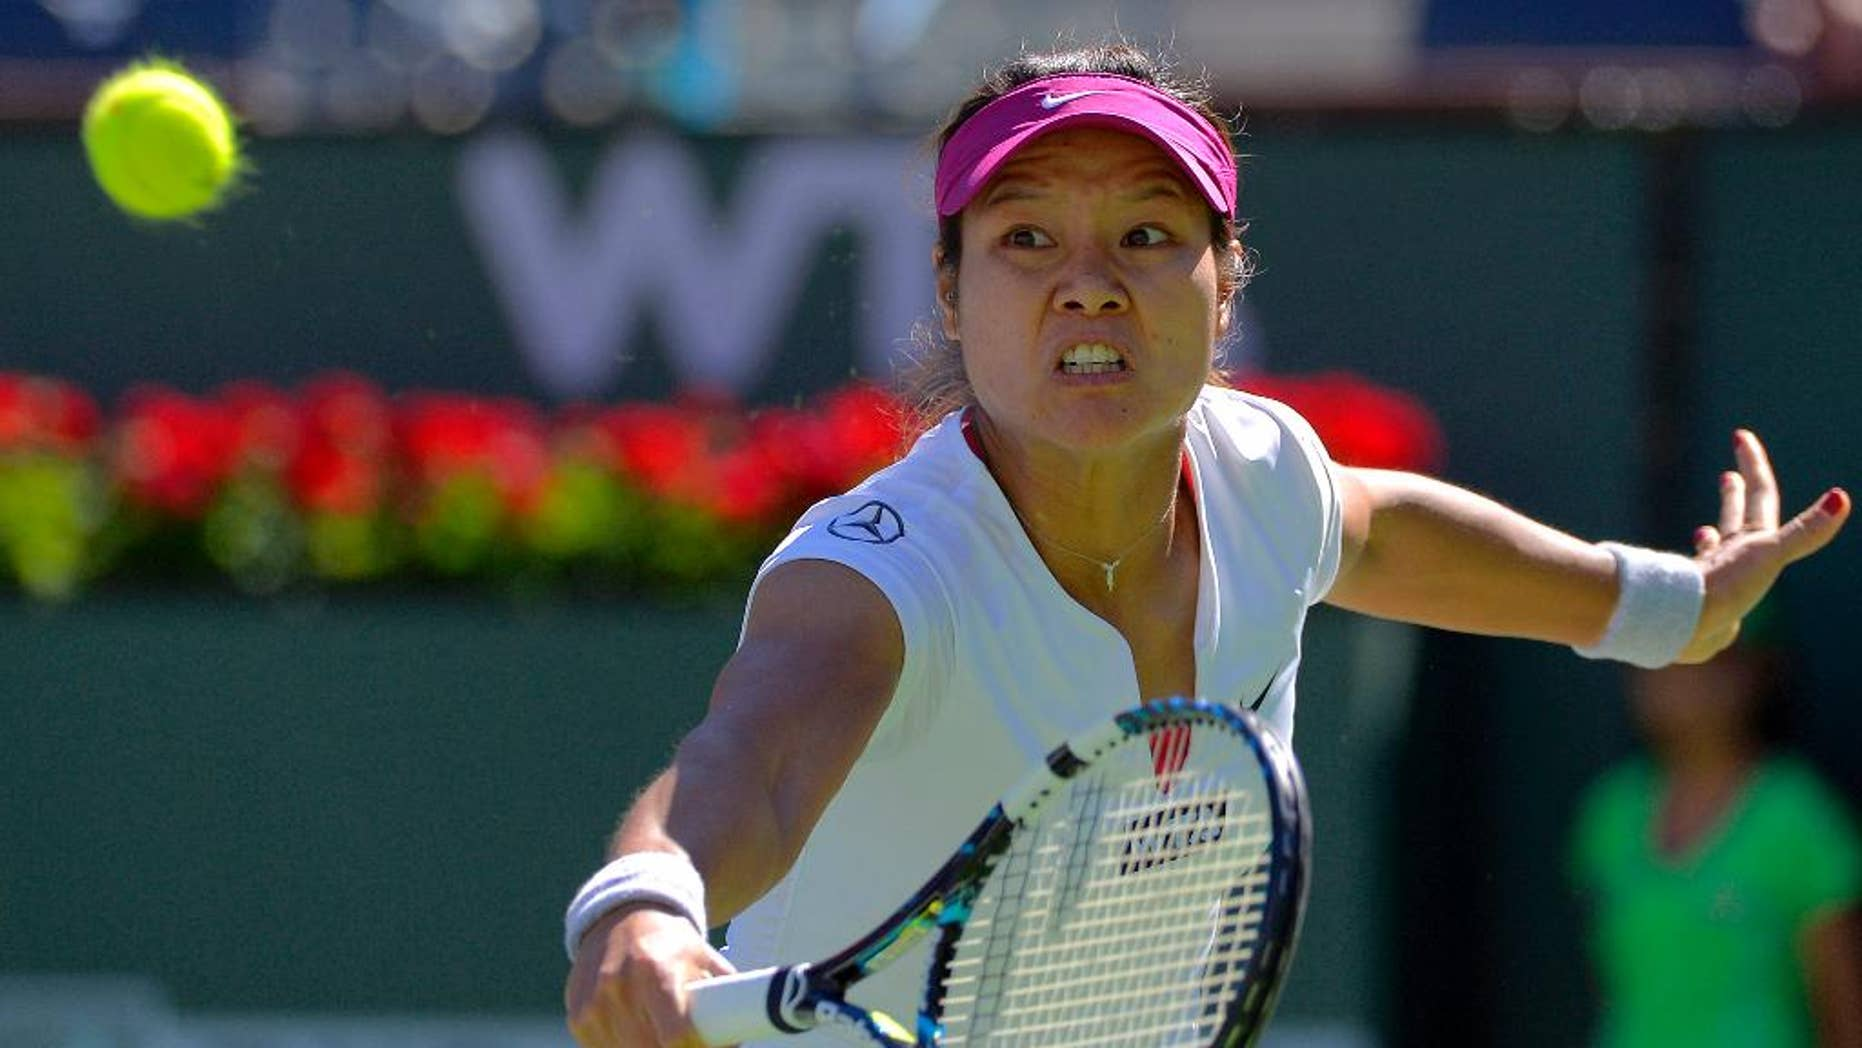 Li Na, of China, returns a volley by Karolina Pliskova, of the Czech Republic, during a third round match at the BNP Paribas Open tennis tournament, Monday, March 10, 2014 in Indian Wells, Calif. (AP Photo/Mark J. Terrill)